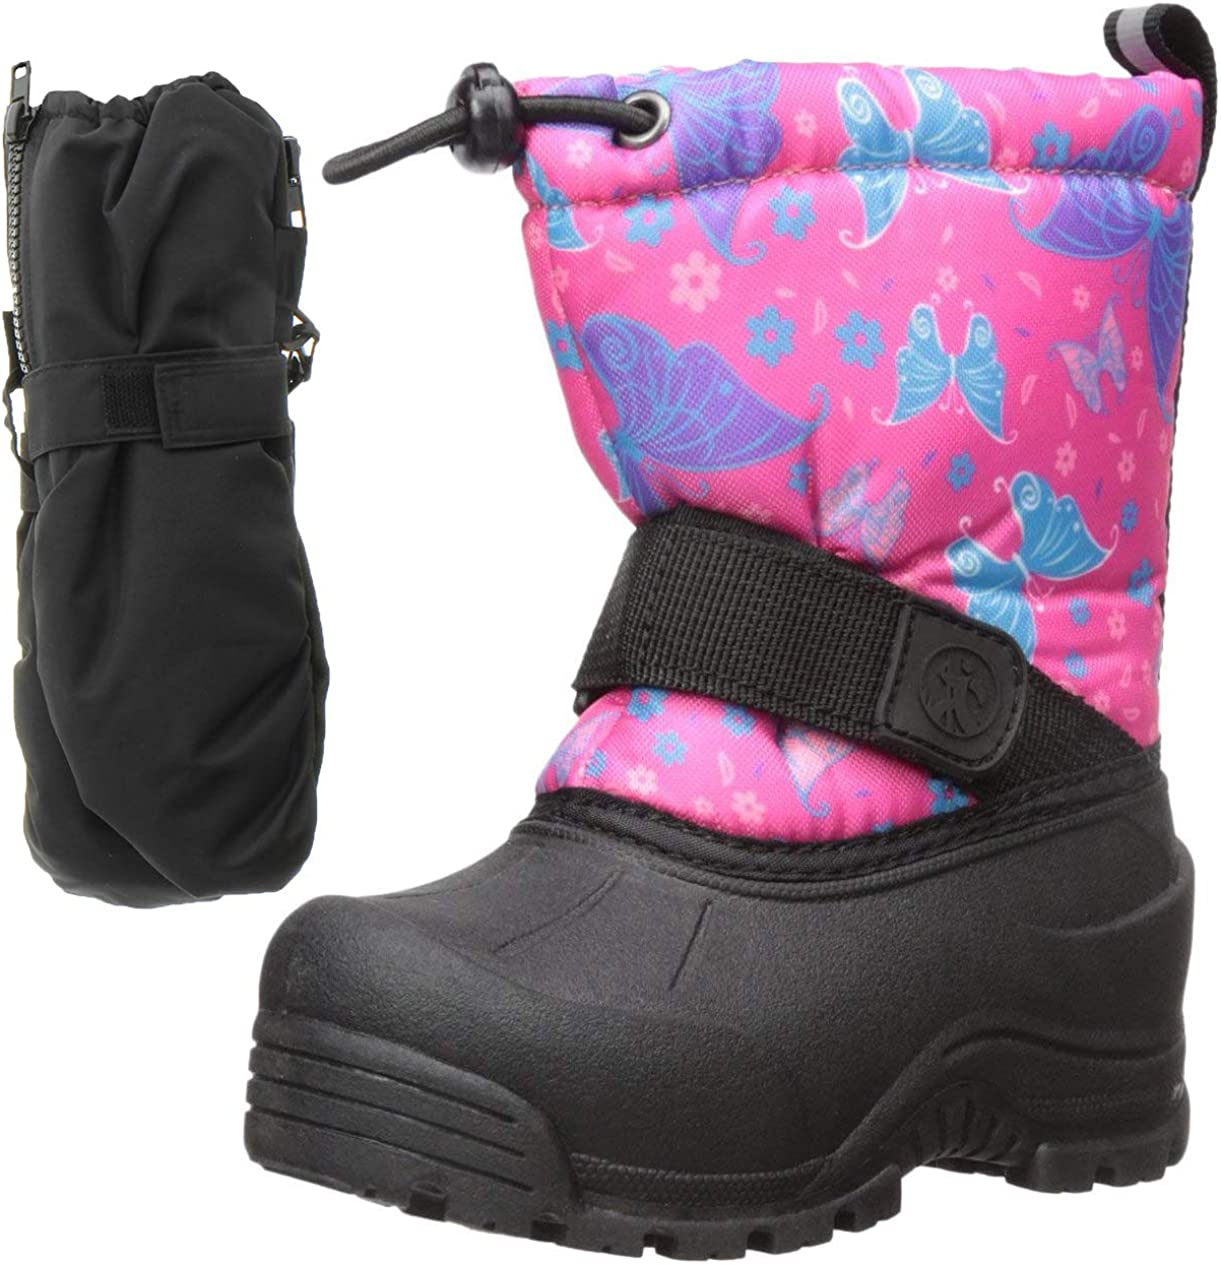 Northside Frosty Winter Girls Snow Boots with Matching Waterproof Mittens, Size: